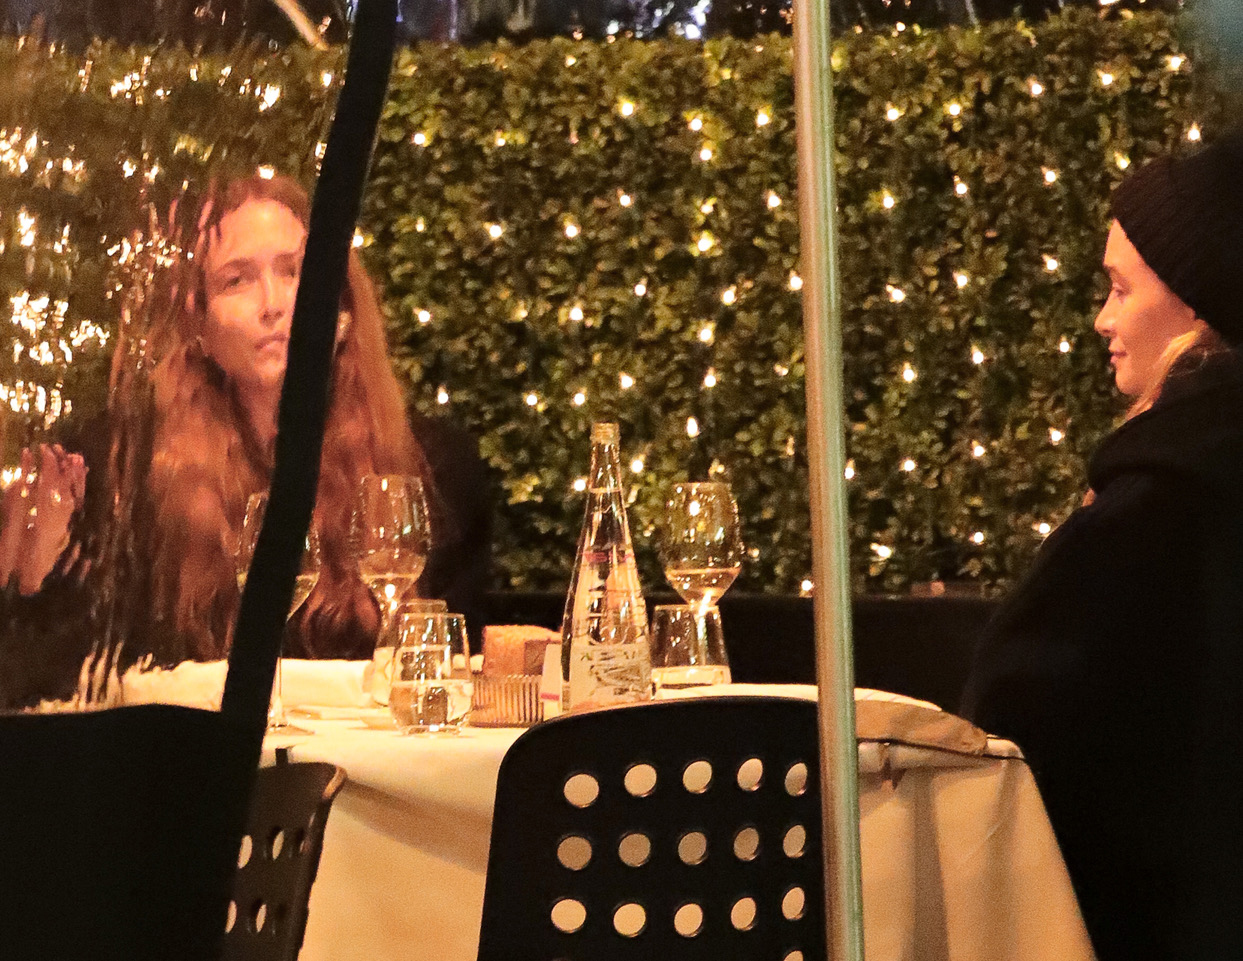 Mary-Kate and Ashley Olsen Matching at Dinner